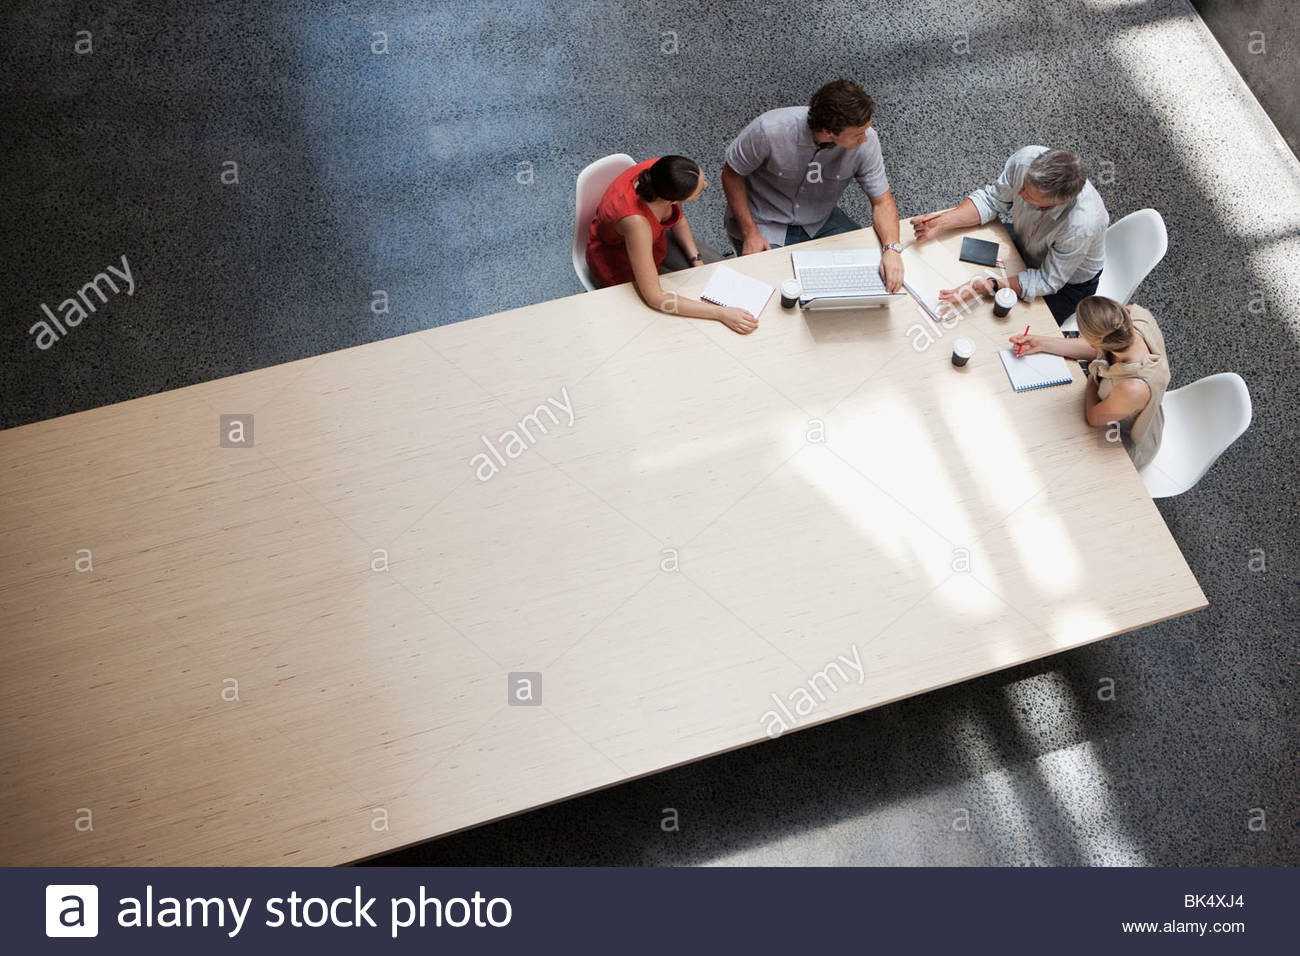 Business at conference table Photo Stock